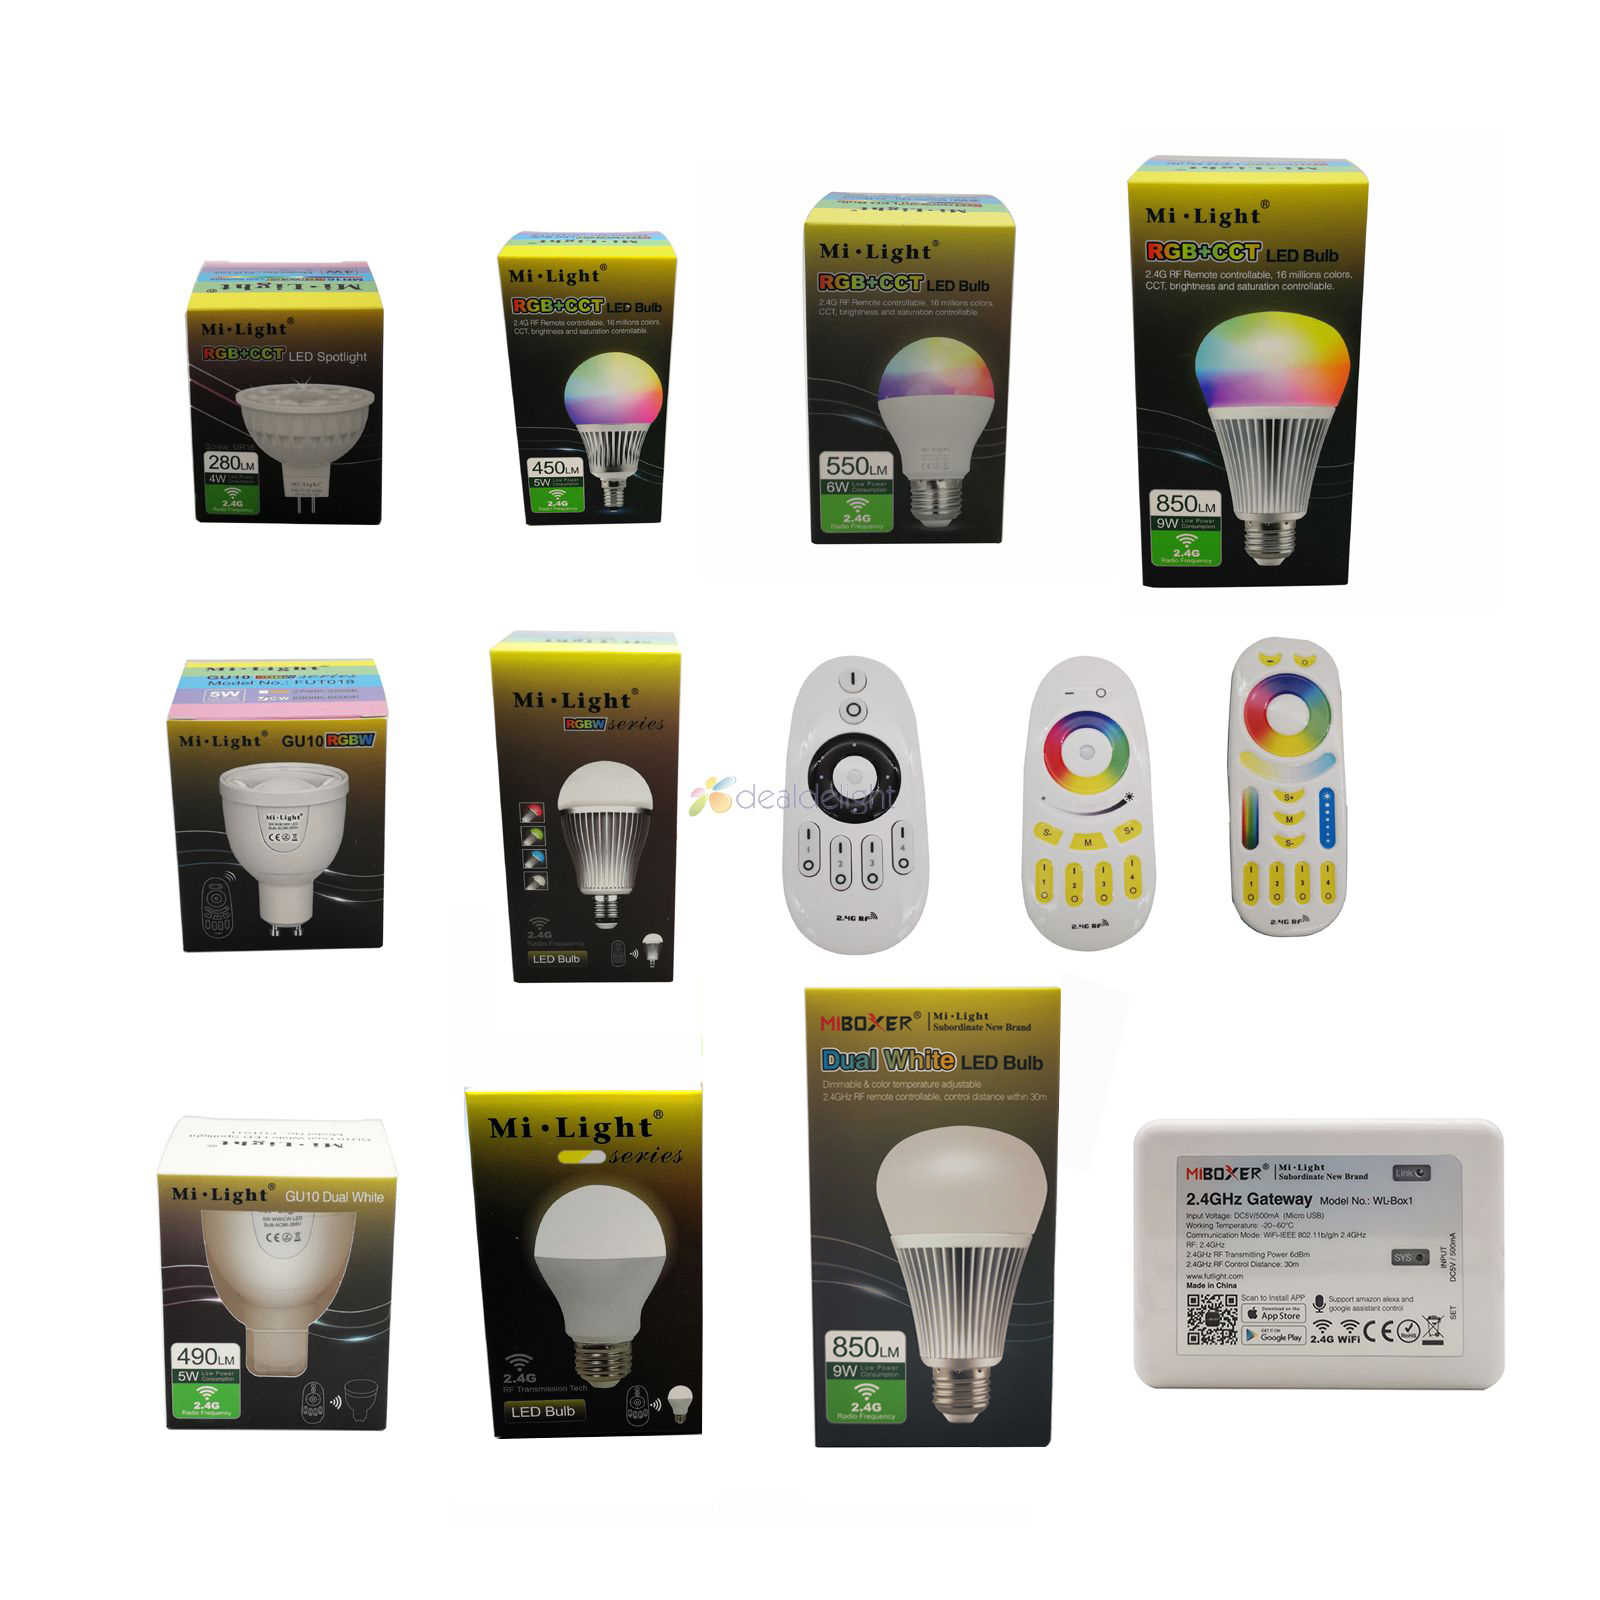 Milight 2.4G Led Lamp MR16 GU10 E14 E27 Led Lamp 4W 5W 6W 9W 12W Cct Rgbw Rgbww Rgb + Cct Led Licht Draadloze Wifi Afstandsbediening